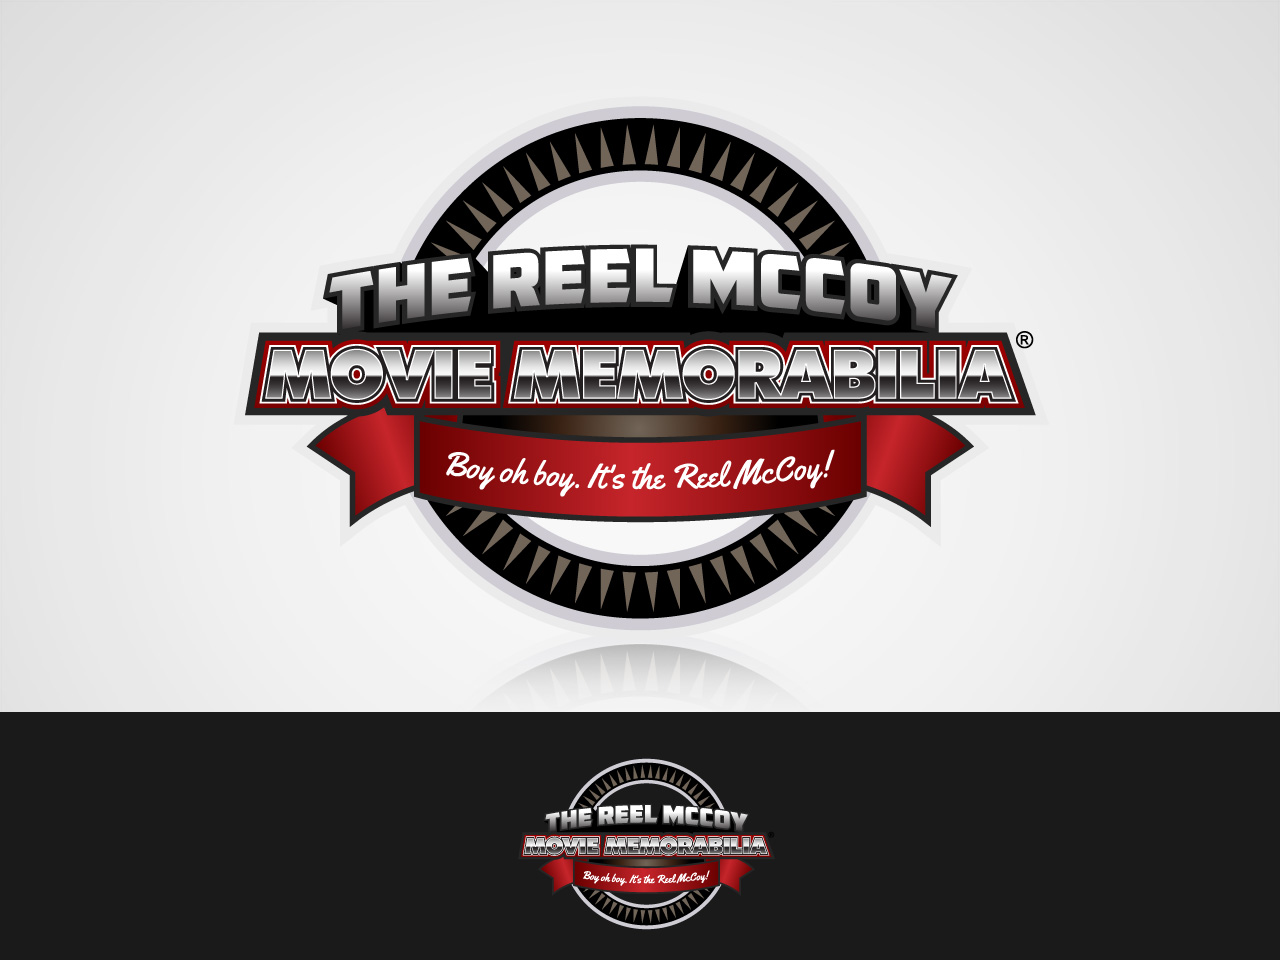 Logo Design by jpbituin - Entry No. 36 in the Logo Design Contest Unique Logo Design Wanted for The Reel McCoy Movie Memorabilia.